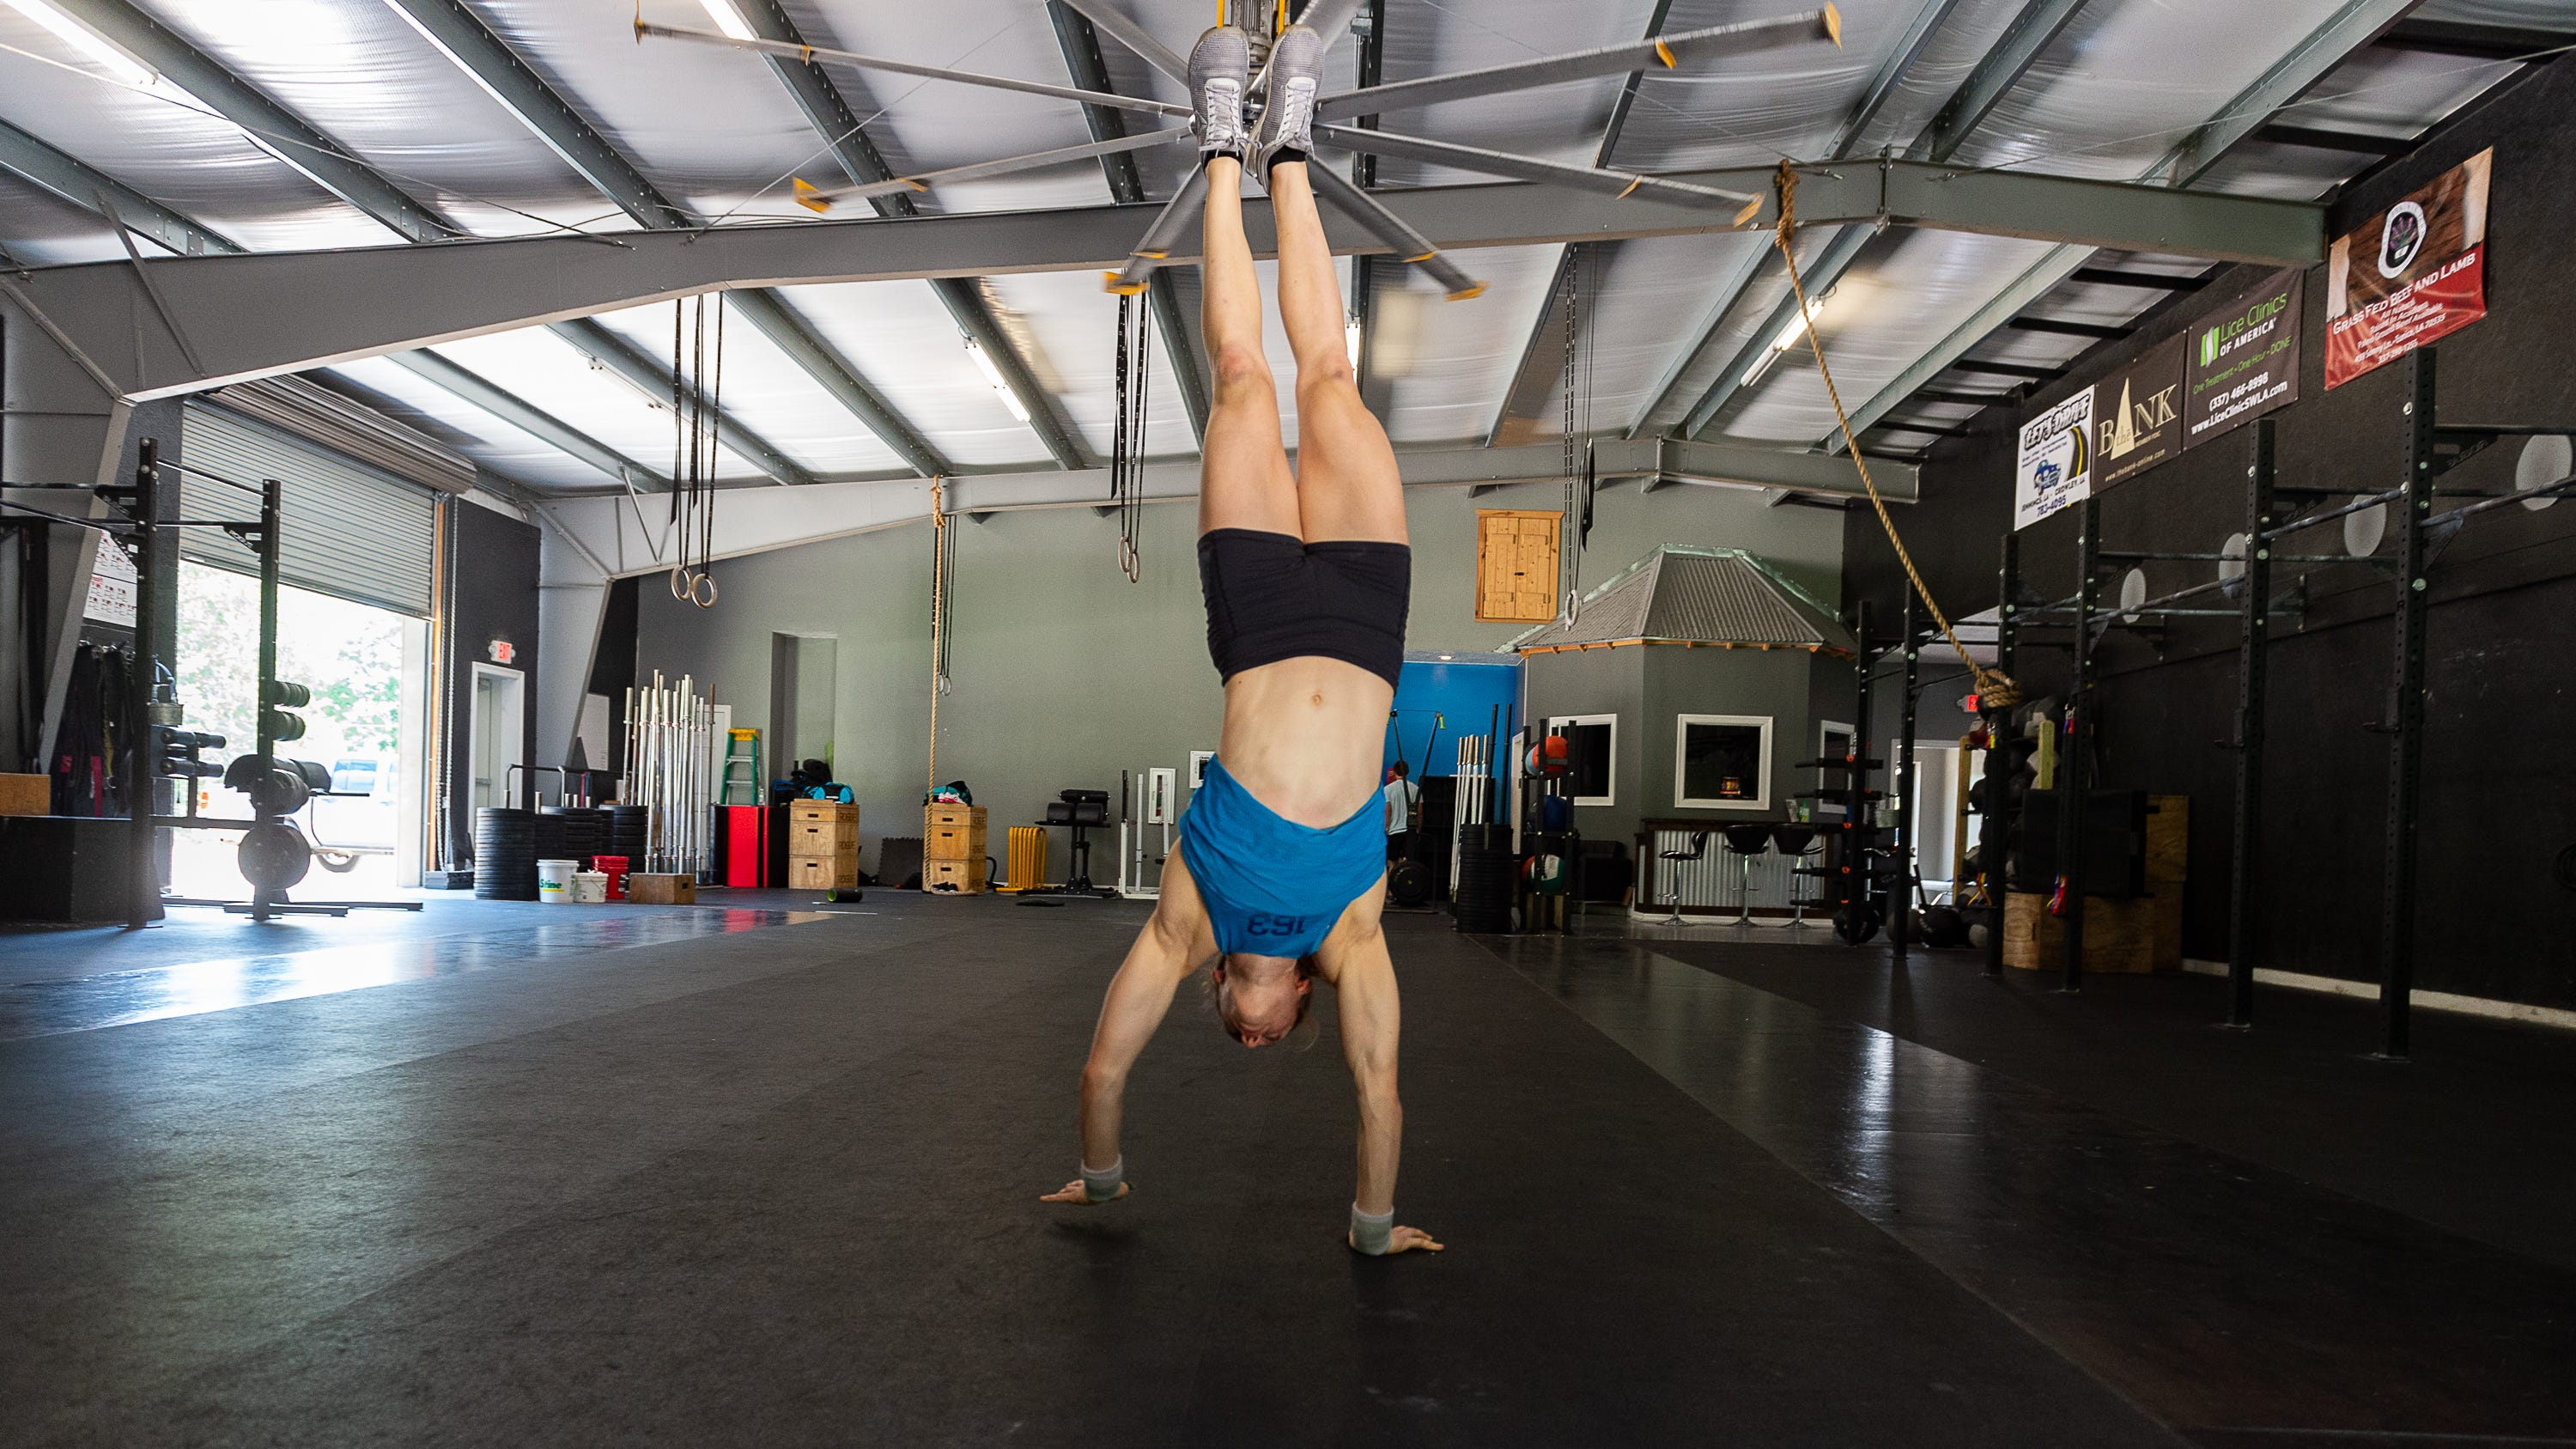 theadvertiser.com - Eric Narcisse, Lafayette Daily Advertiser - Iota CrossFit enthusiast seeks to be World's Fittest Teen one last time